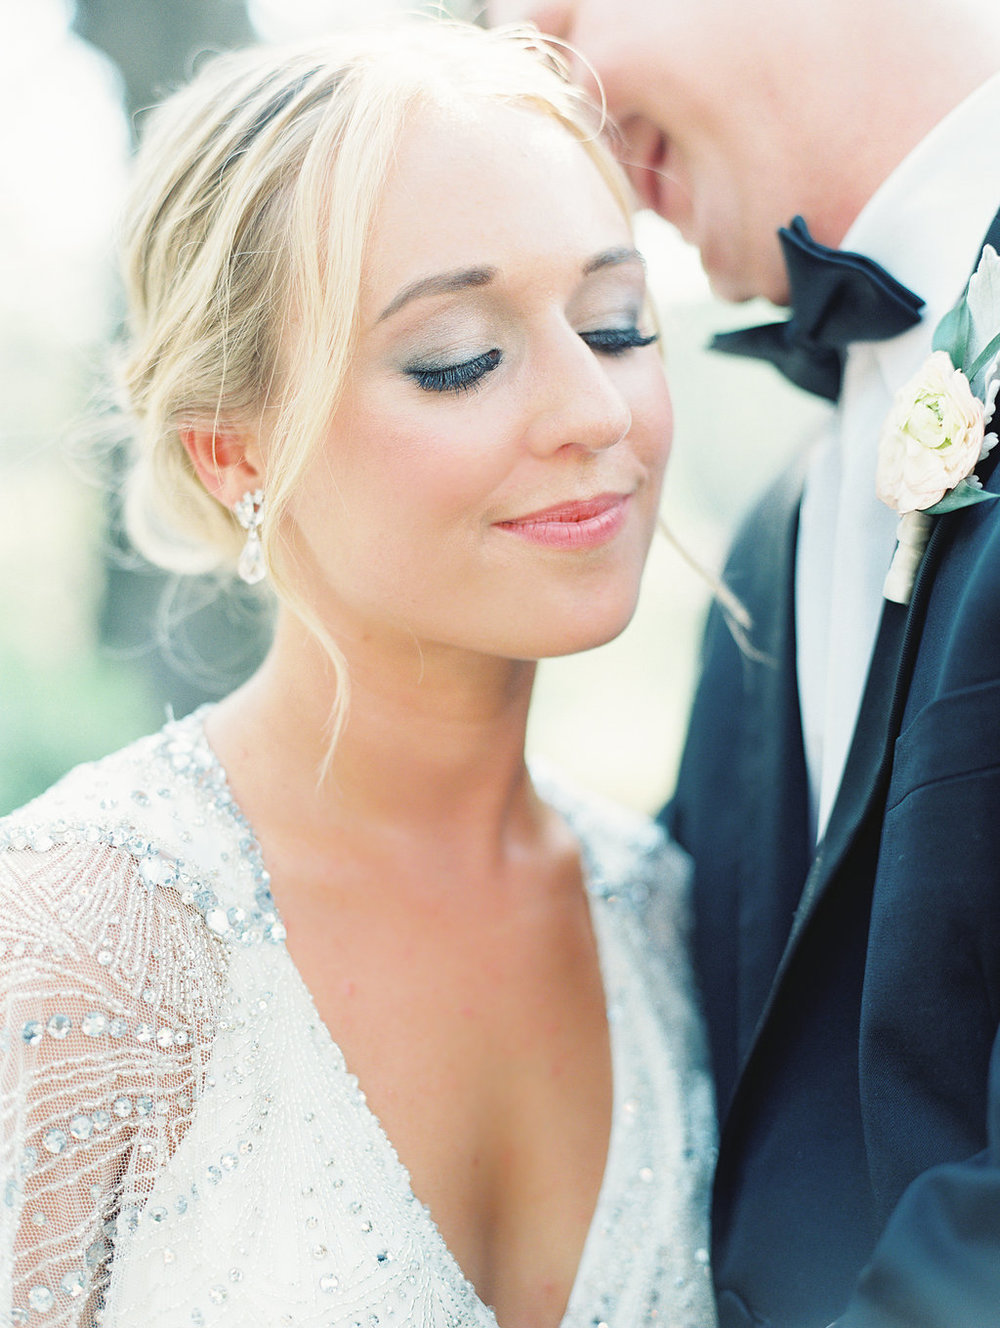 Wedding portraits at Oldfield Club  //  HIlton Head photography by Landon Jacobs  //  A Lowcountry Wedding Magazine